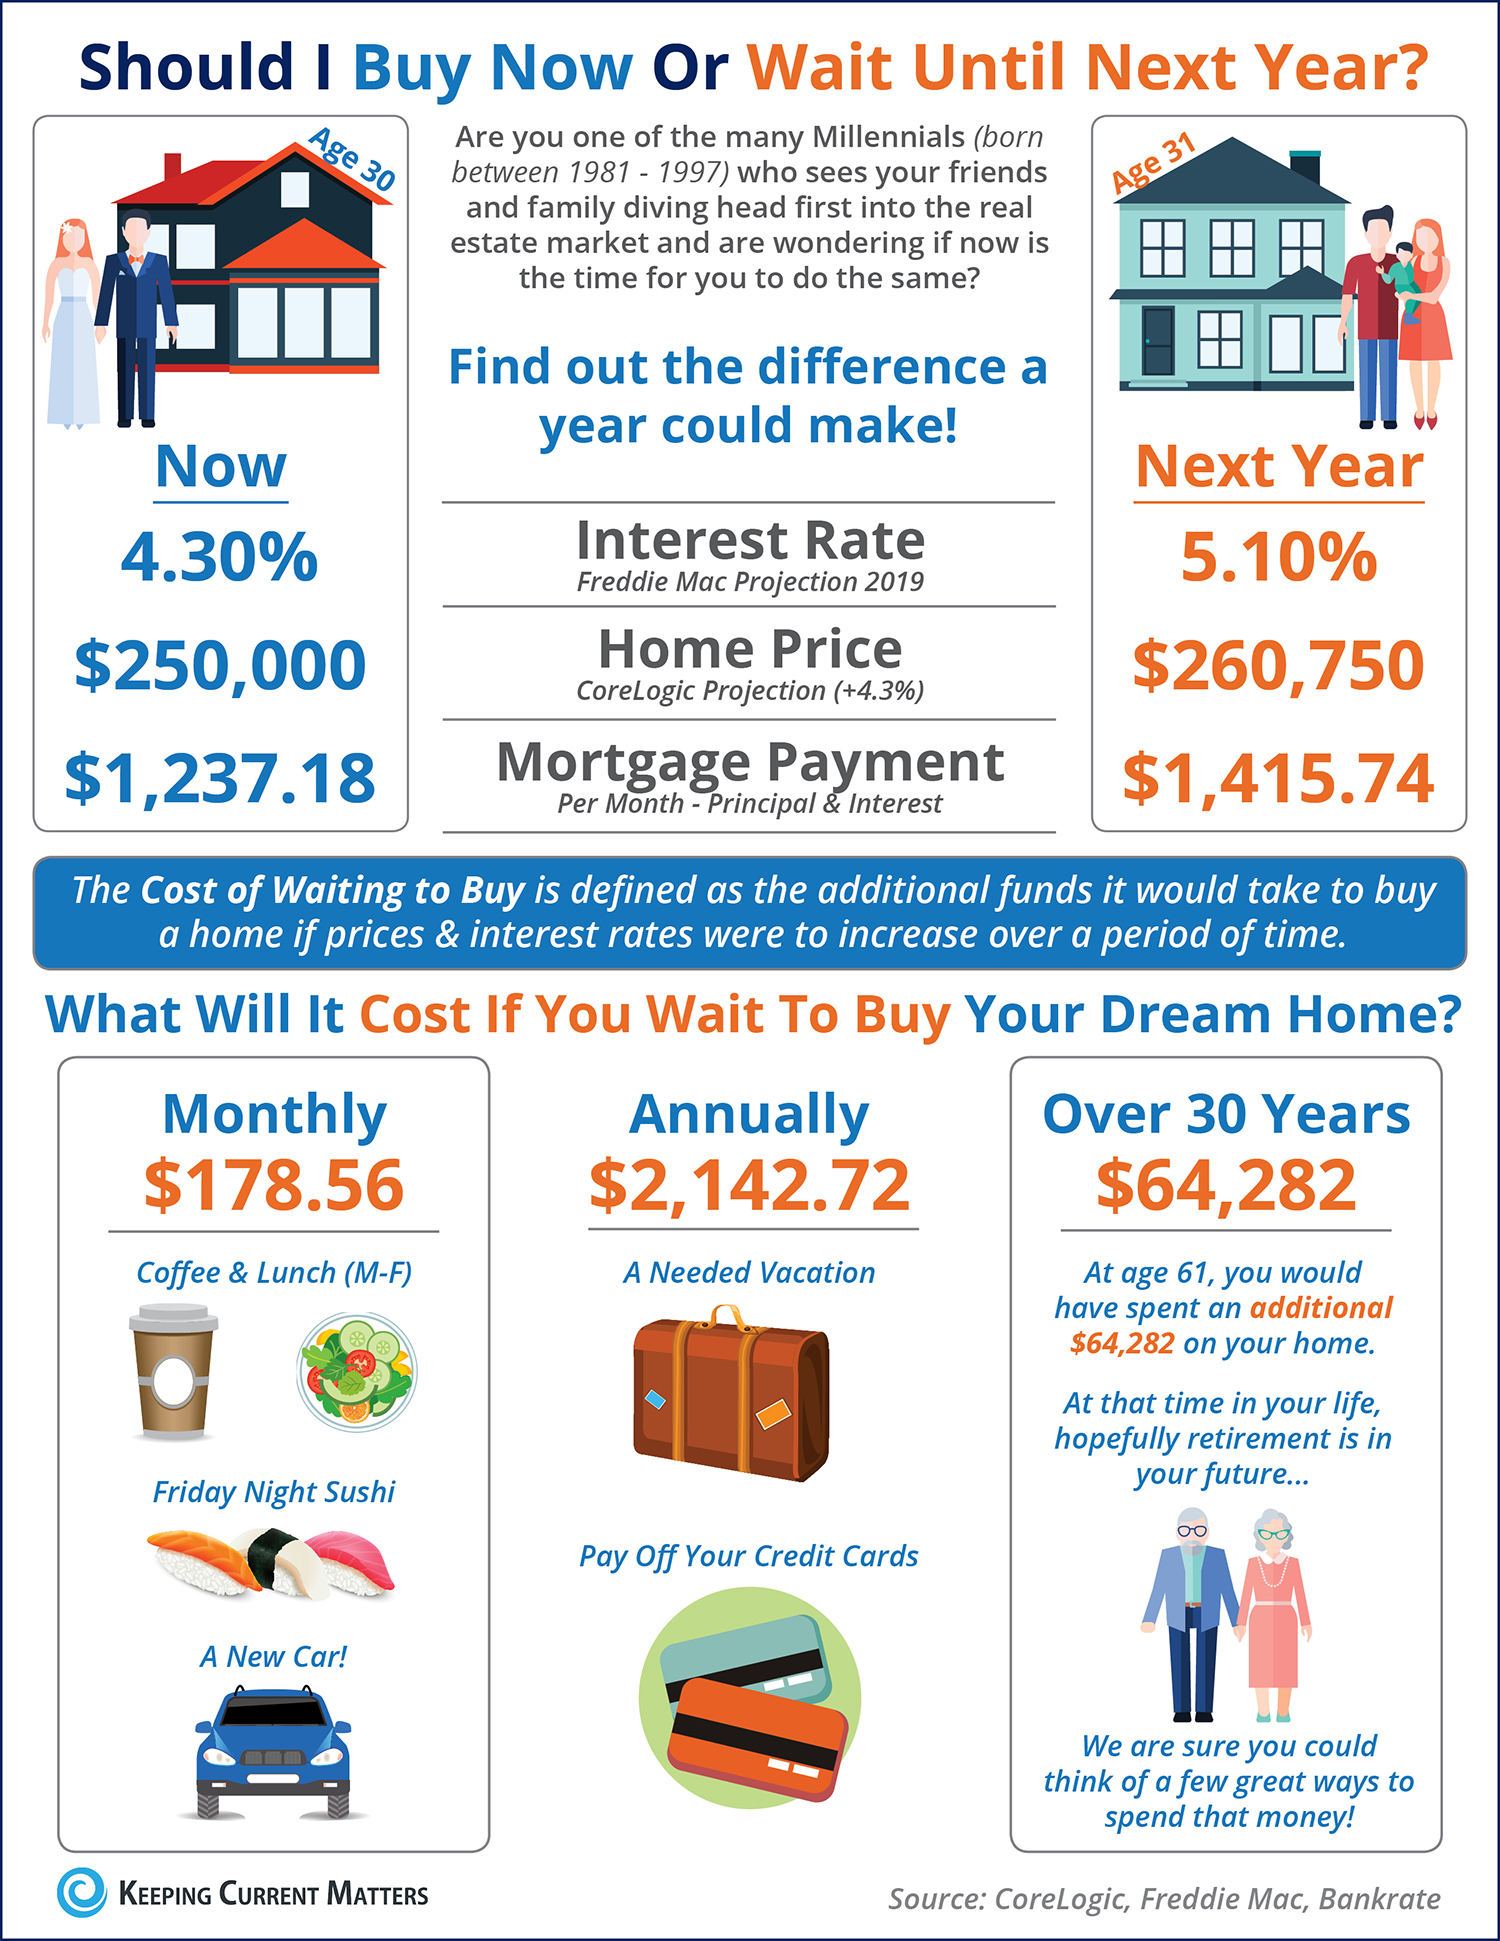 Should I Wait until next Year to Buy? Or Buy Now? [INFOGRAPHIC] | Keeping Current Matters